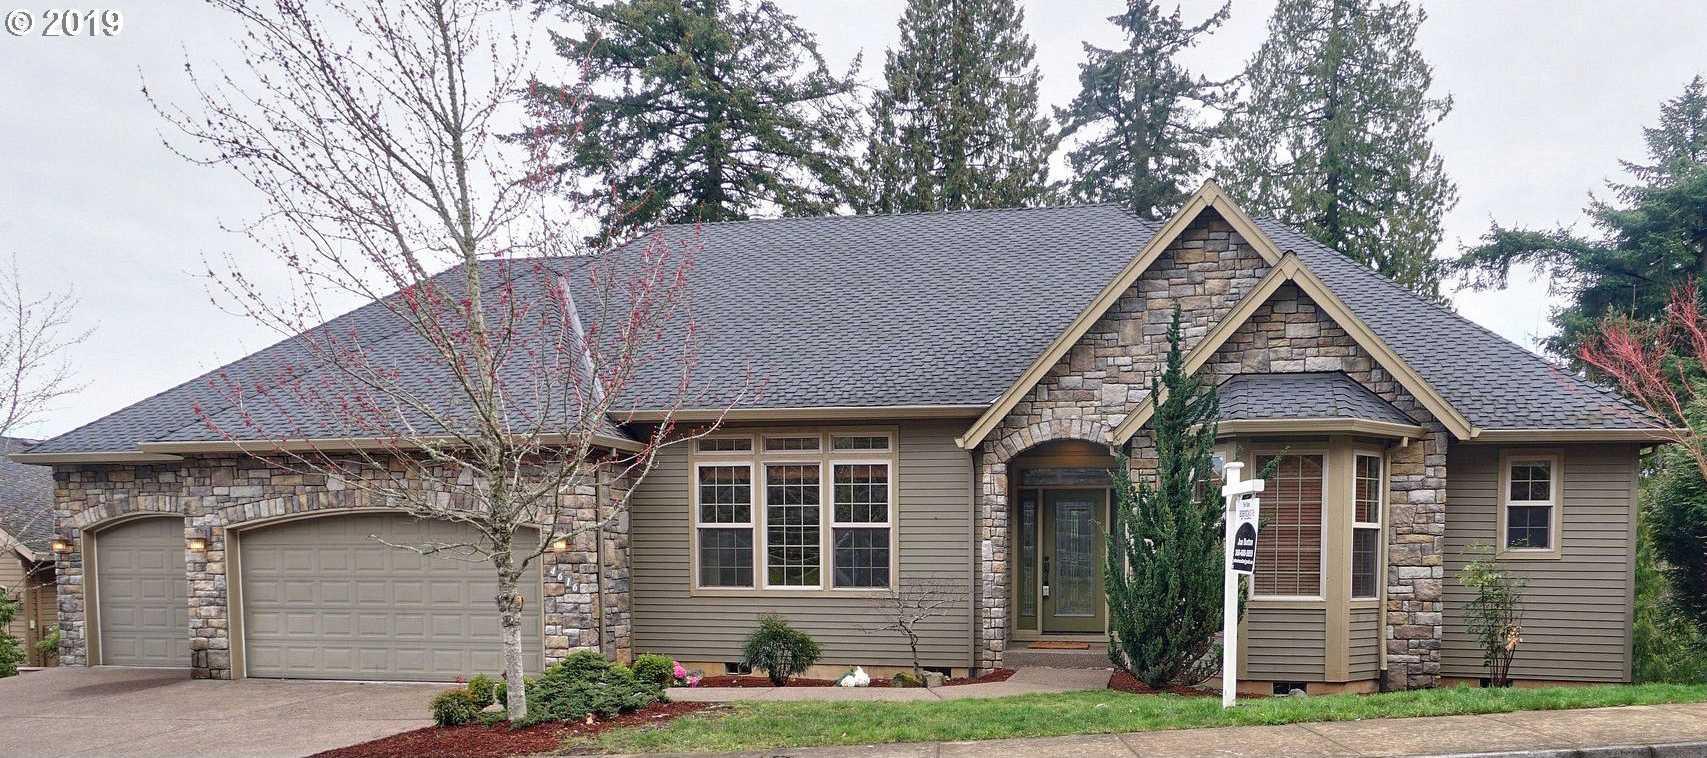 $649,900 - 4Br/3Ba -  for Sale in Gresham